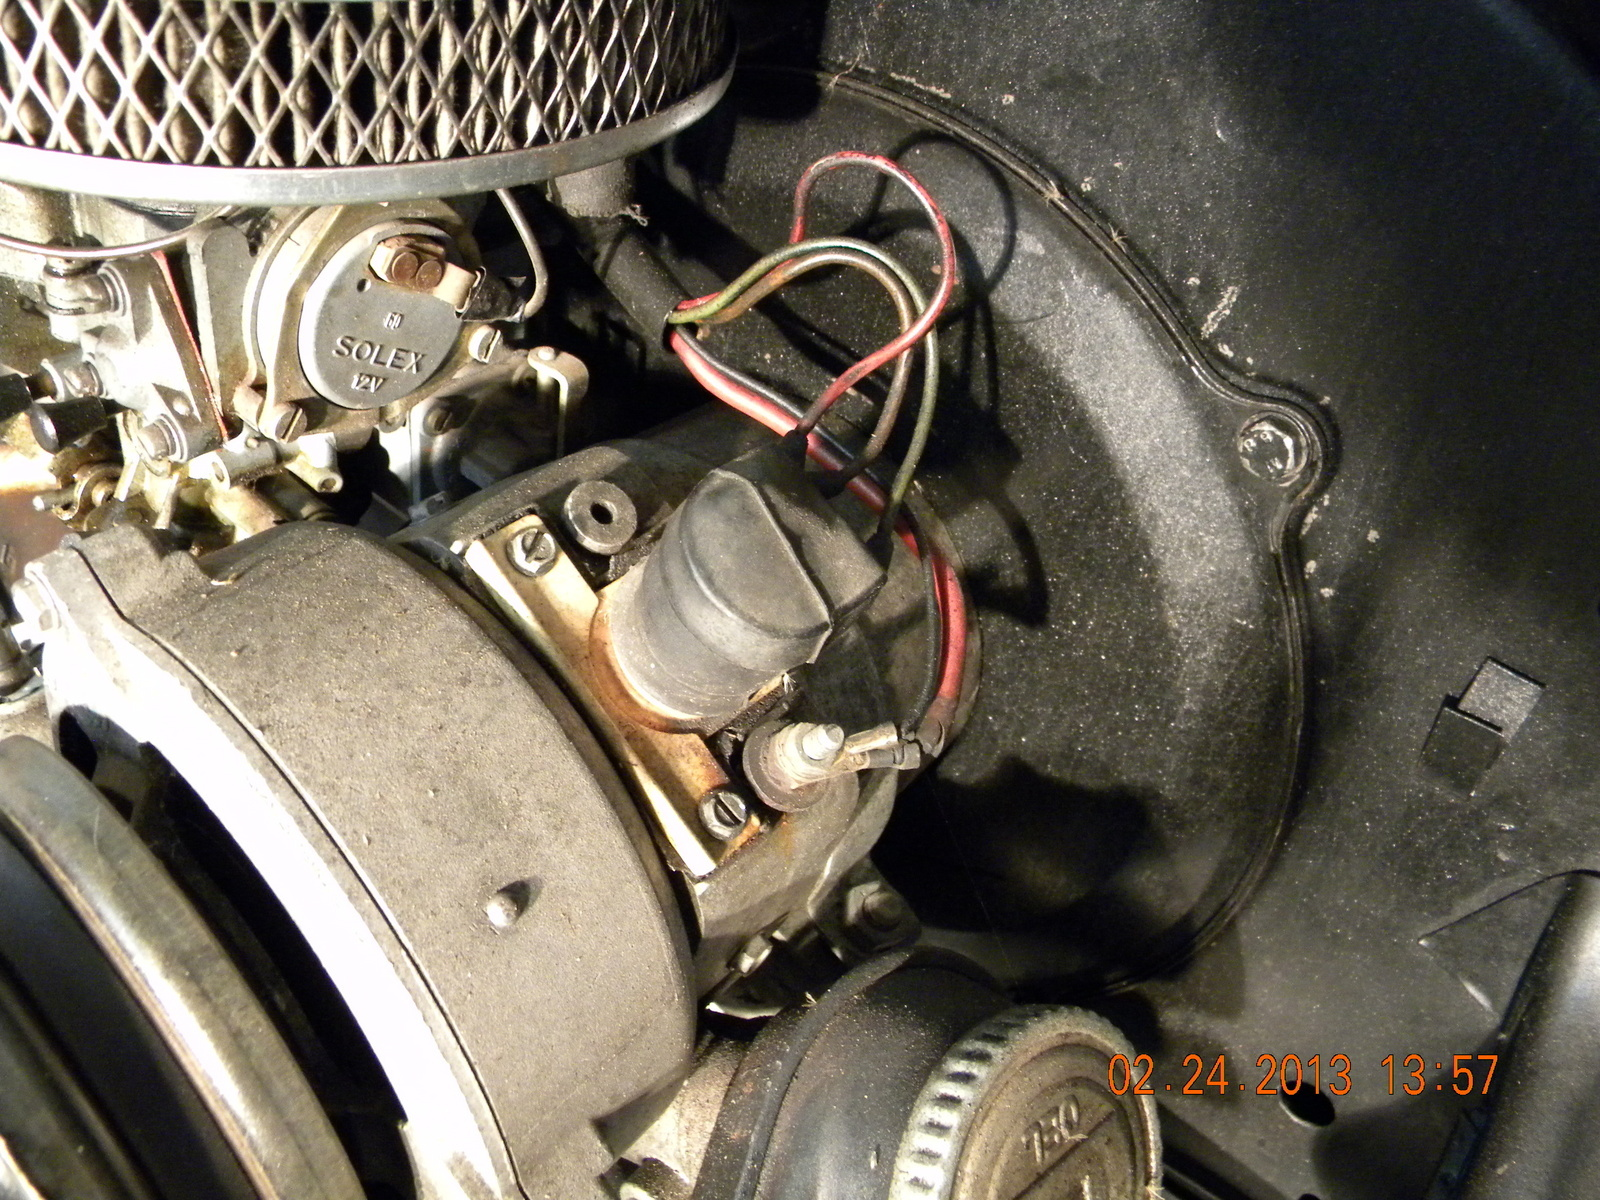 1974_volkswagen_beetle pic 8215095219041188070 1600x1200 volkswagen beetle questions try this again i have a 1974 beetle vw voltage regulator wiring diagram at gsmx.co